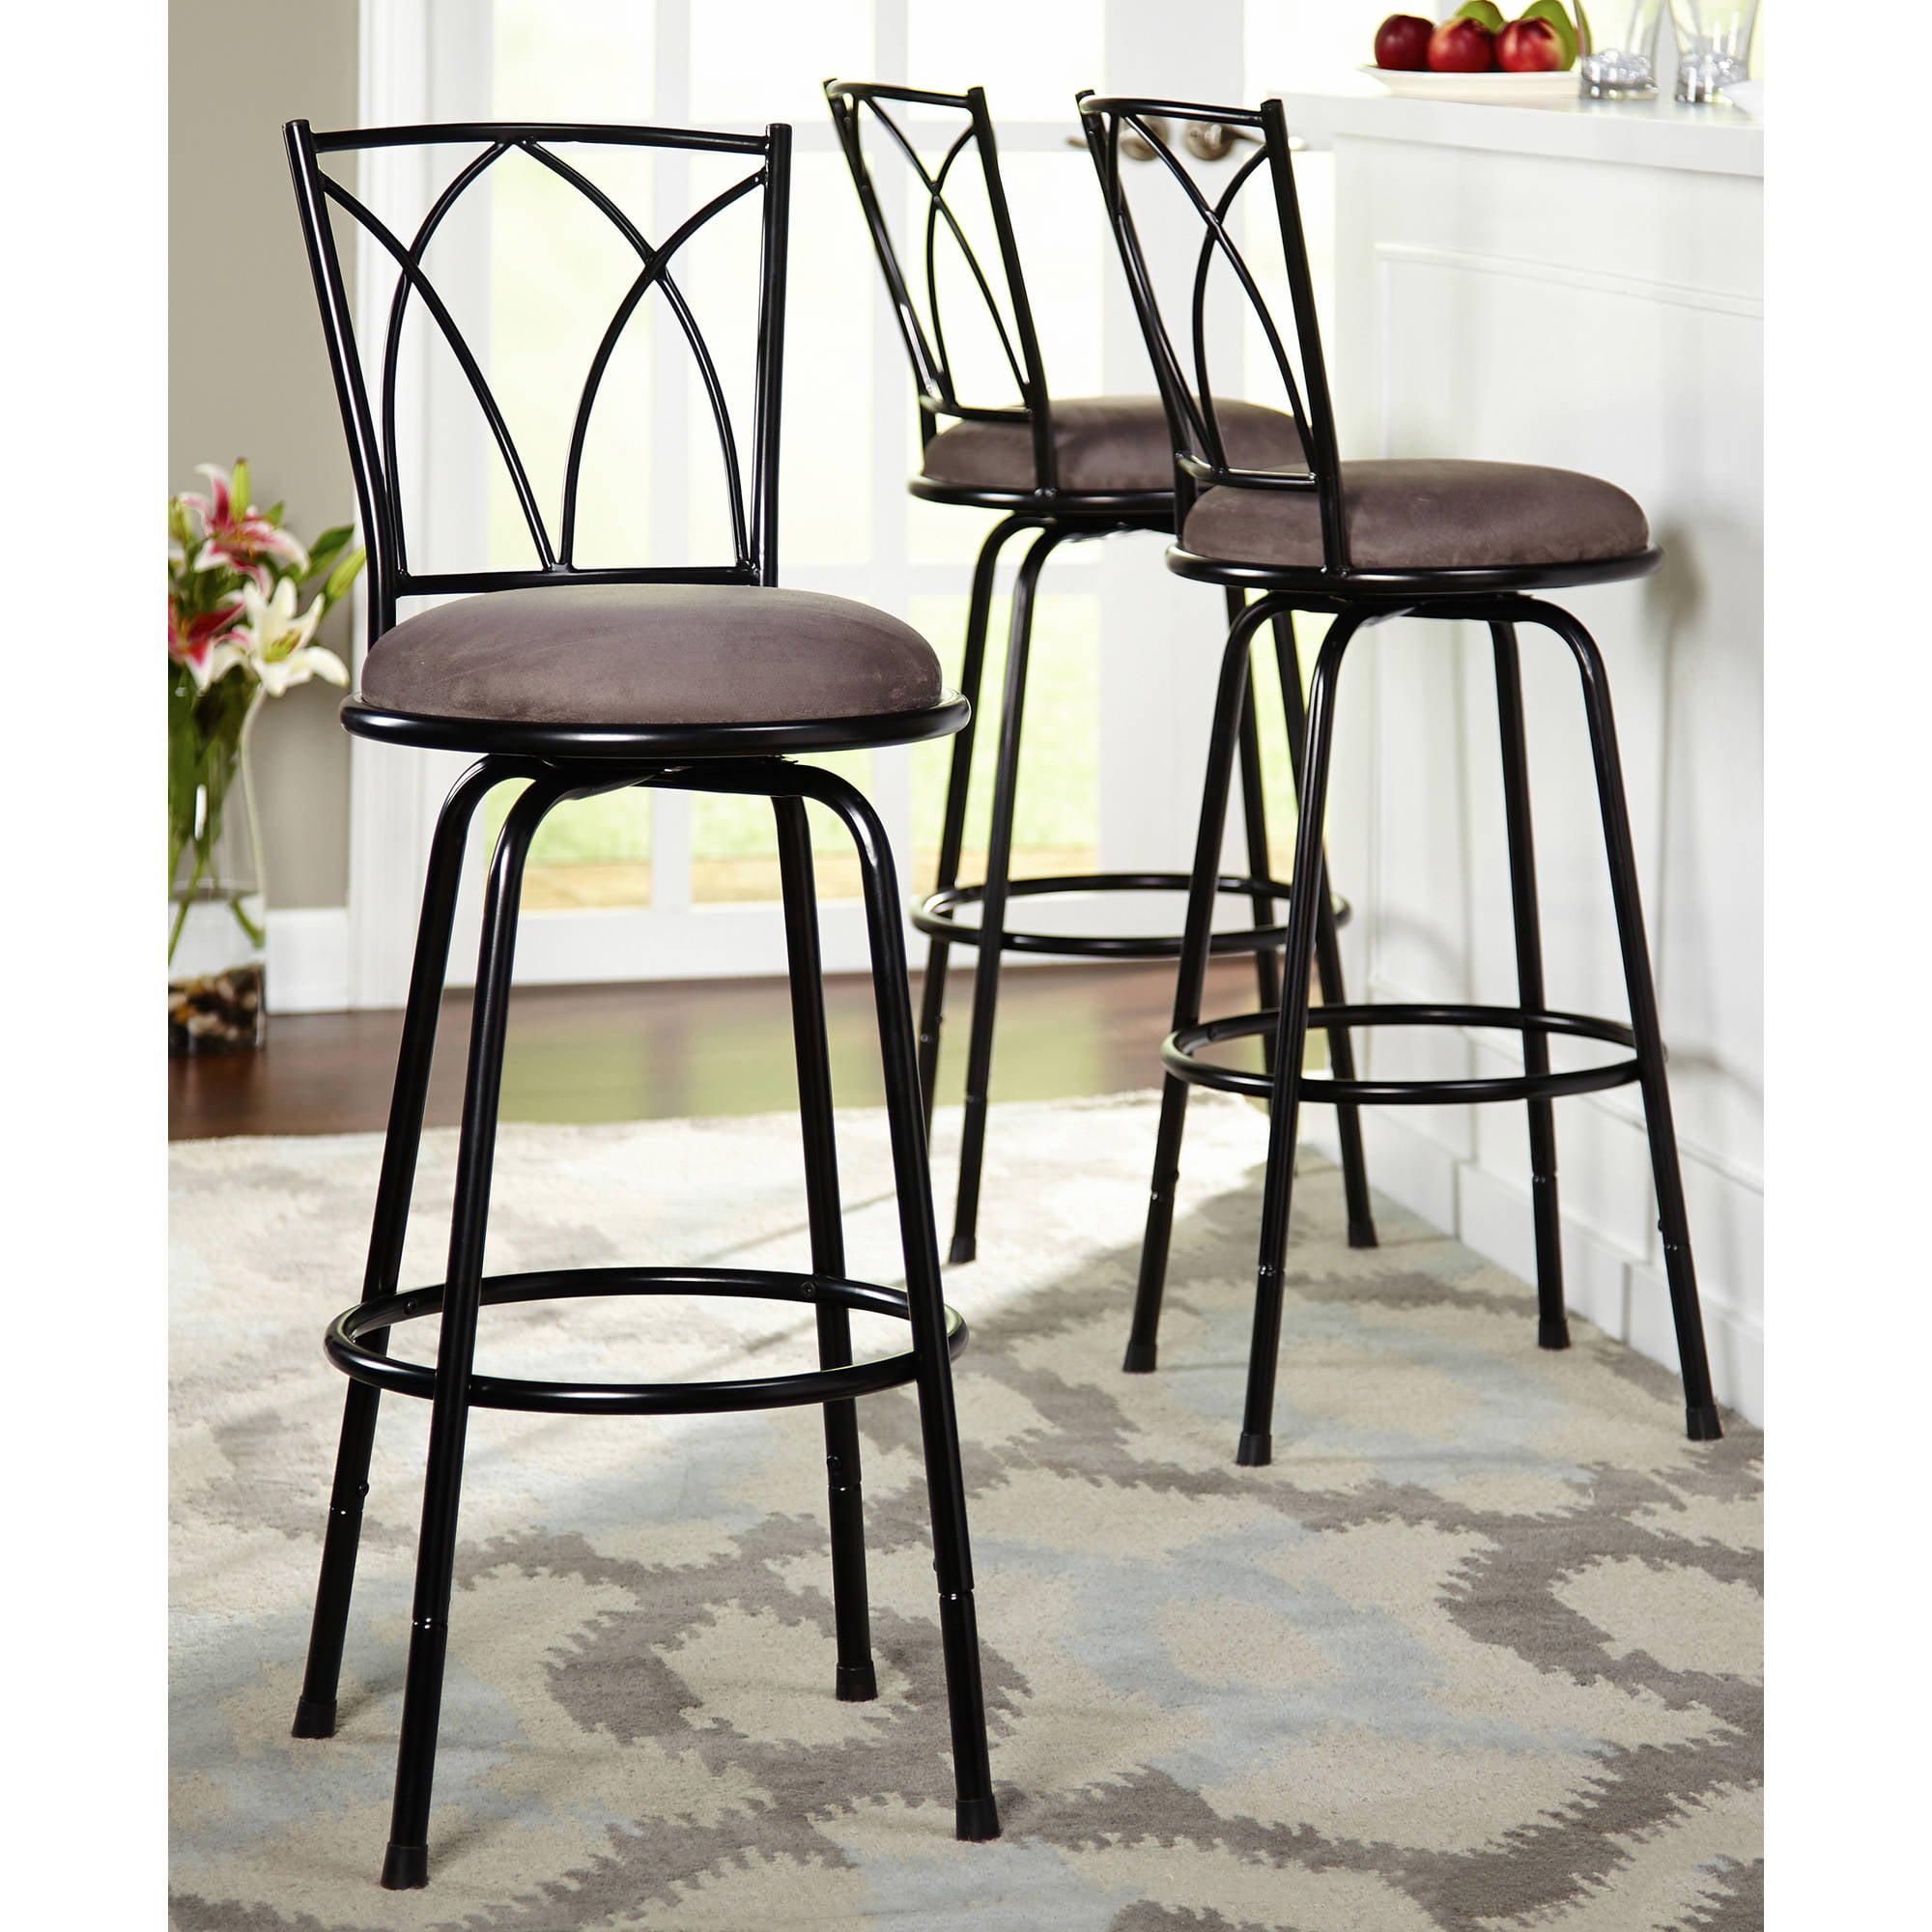 Delta Adjustable Metal Barstools, 3 Piece Set, Black   Walmart.com